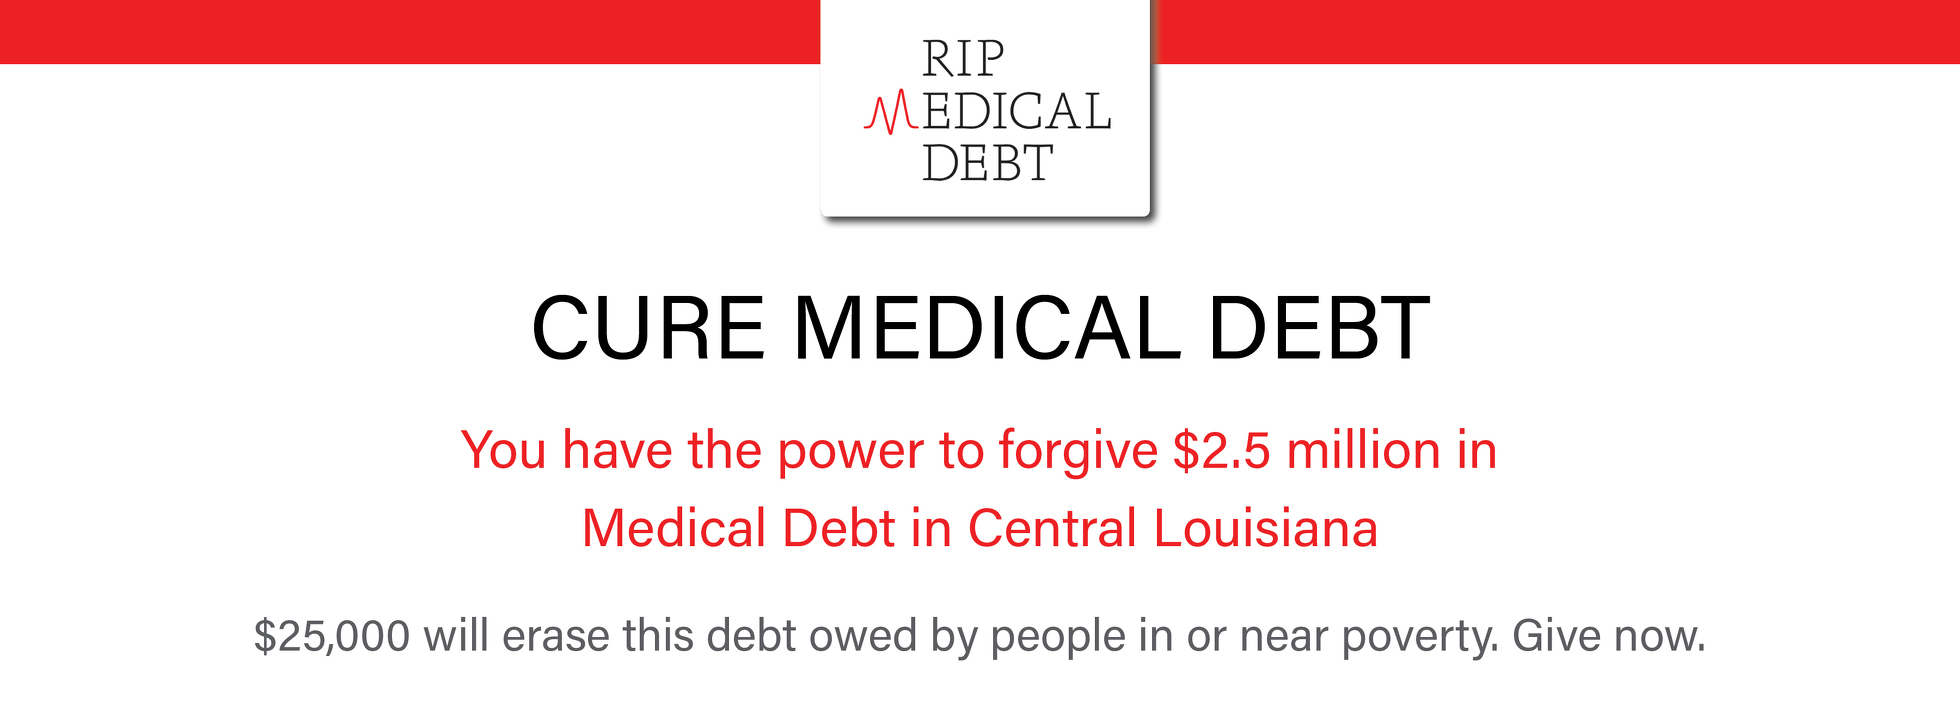 Central Louisiana Debt relief